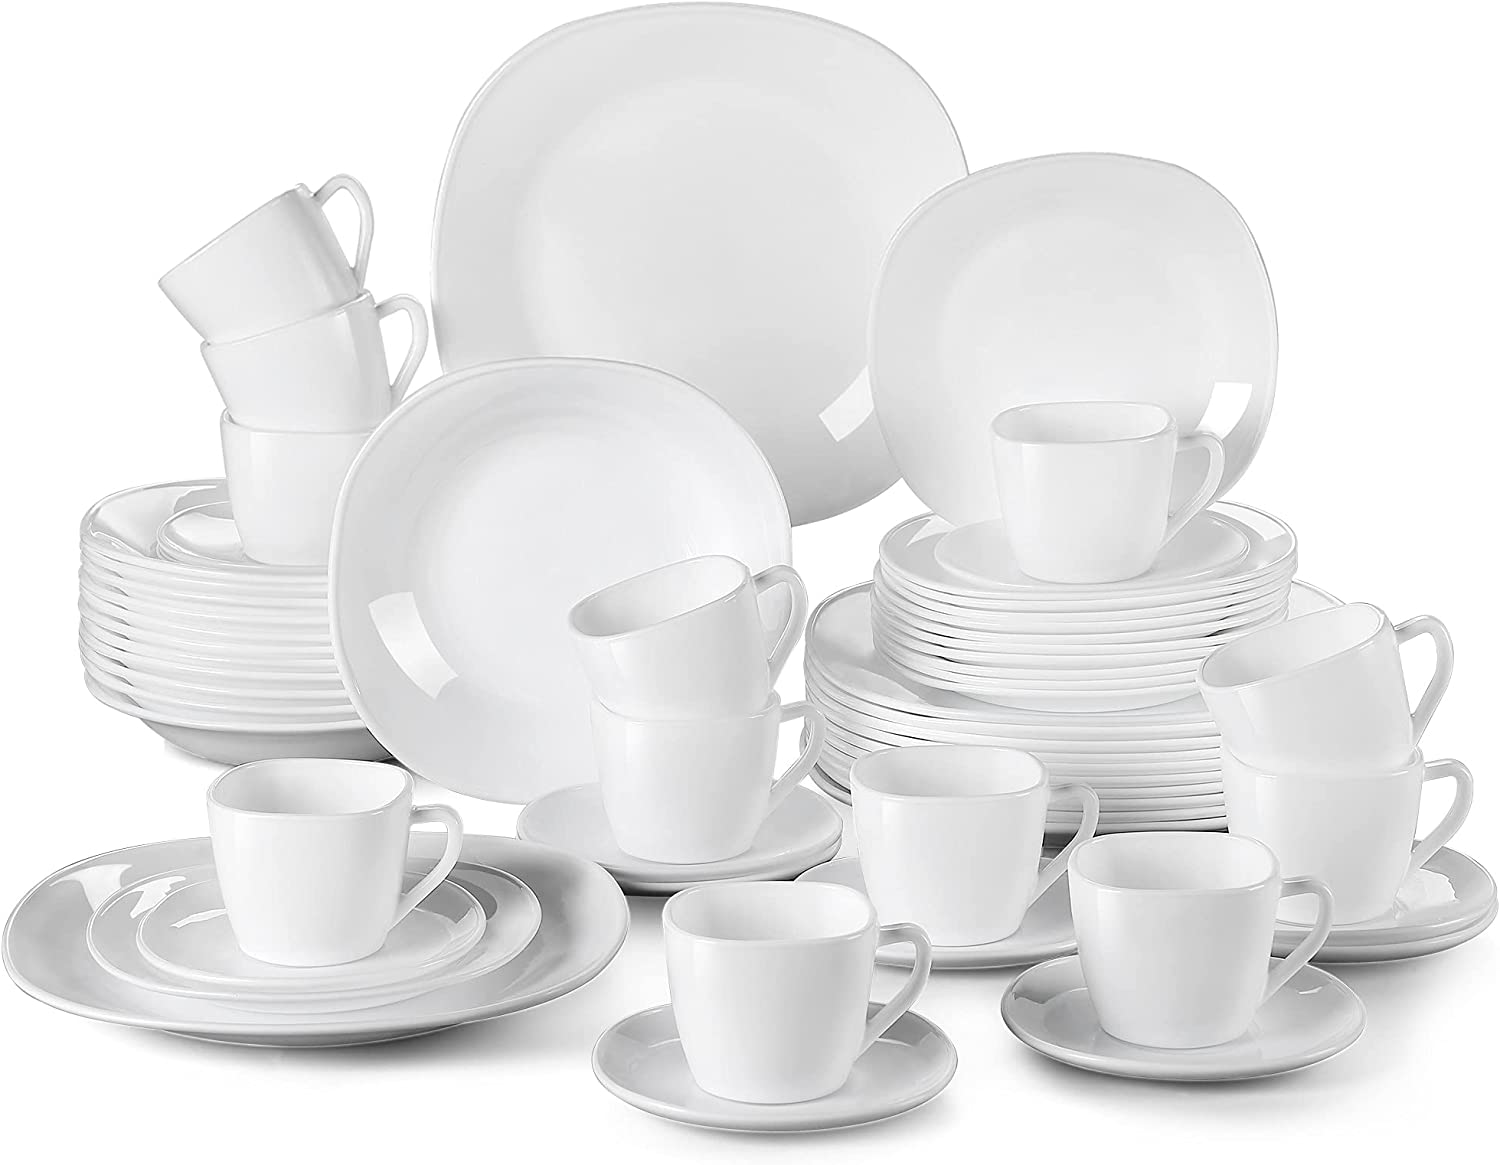 JL819 30 60-Piece Opal Glass Our shop most popular Dinner P Max 51% OFF Set Plate With Soup